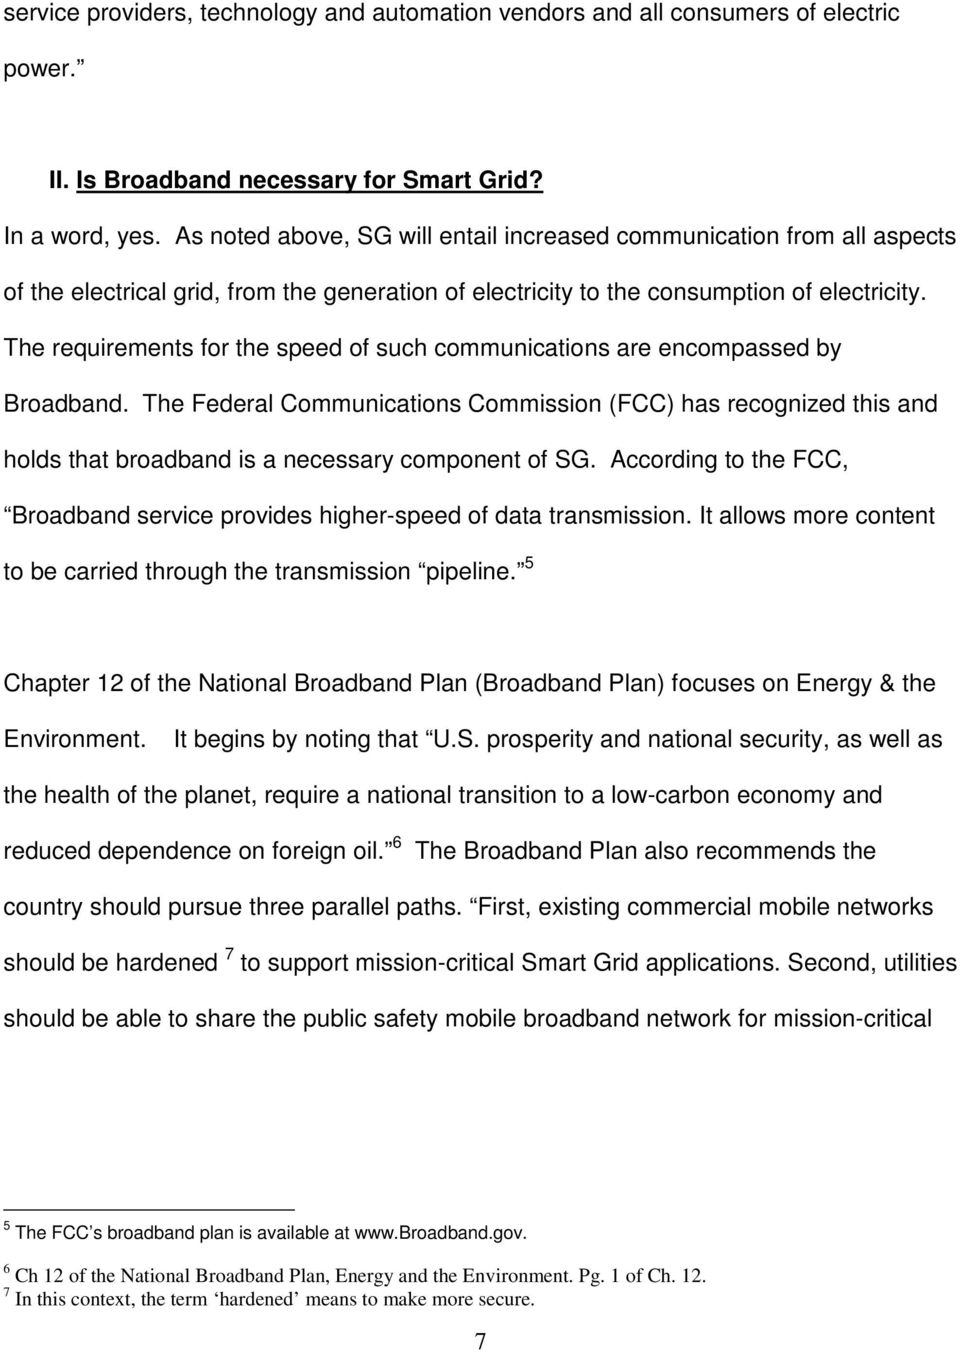 Status Report On Broadband Deployment By Electric And Gas Utilities Electrical Grid Plan The Requirements For Speed Of Such Communications Are Encompassed